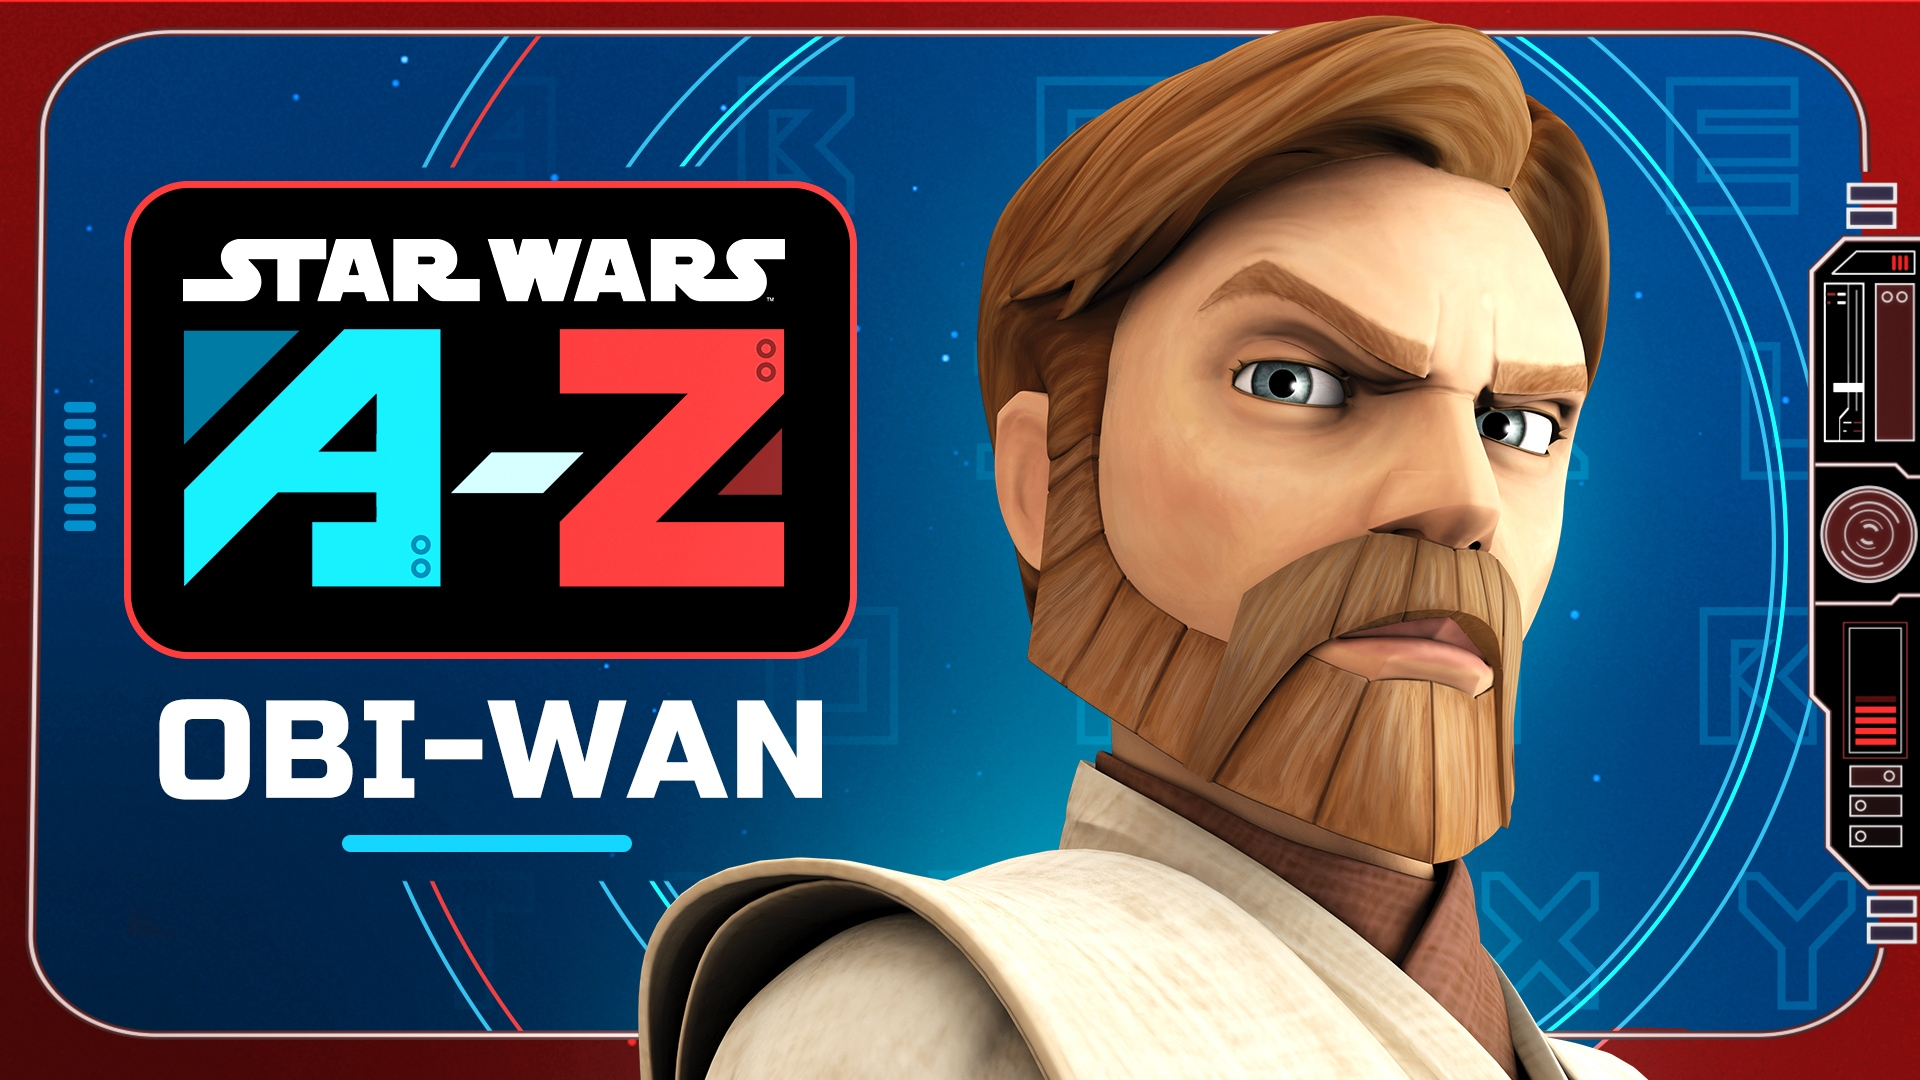 Obi-Wan | Star Wars A to Z